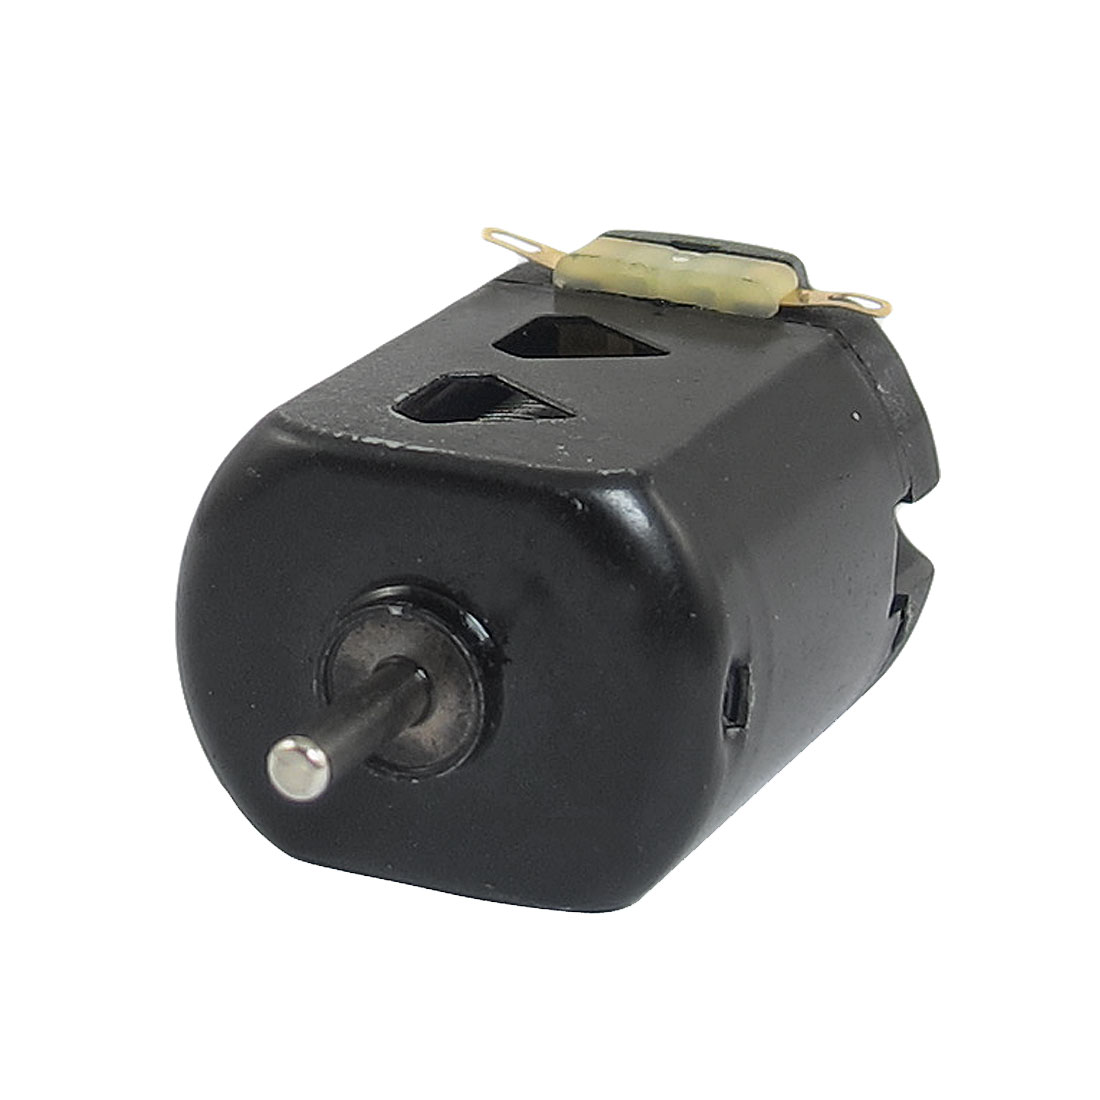 DC 1.5V 9000RPM Rotating Speed Motor 130 1.5VDC for Mini Racing Car